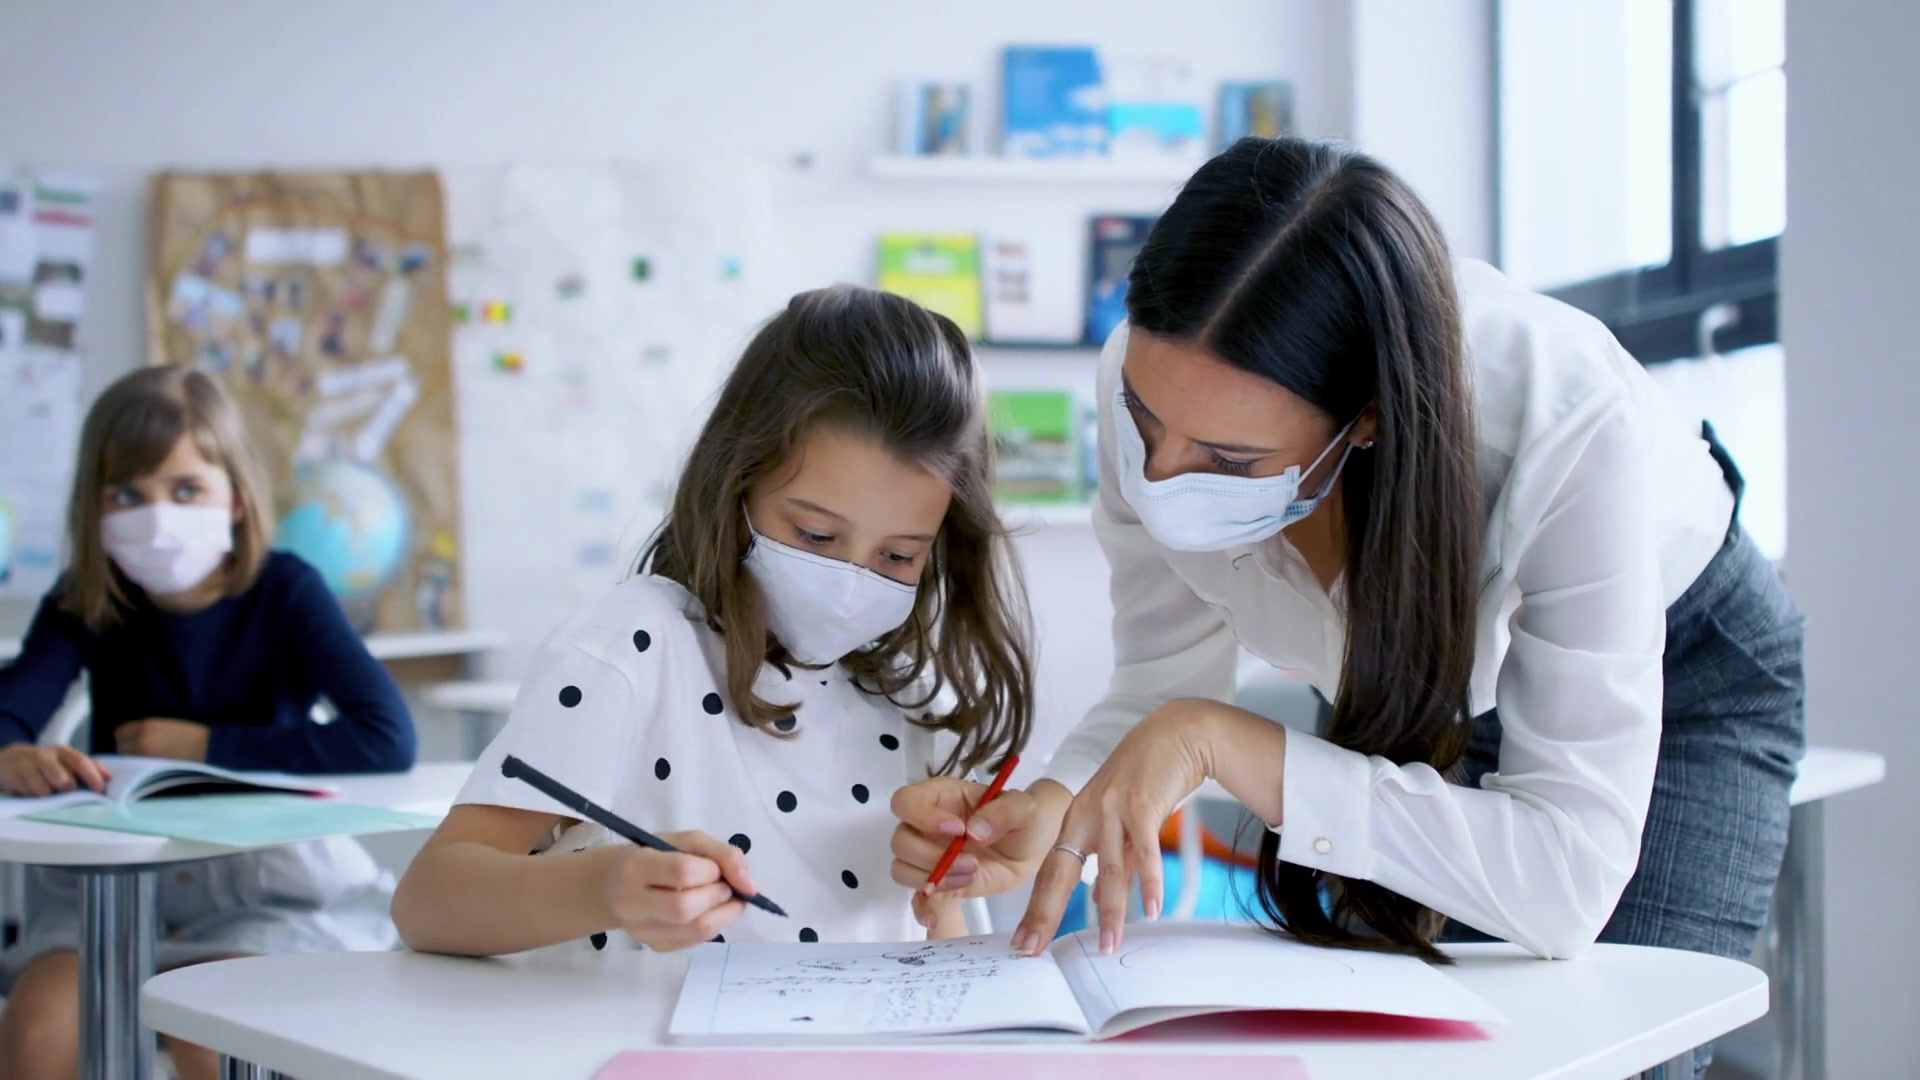 As COVID-19 cases surge, CDC recommends universal indoor mask use